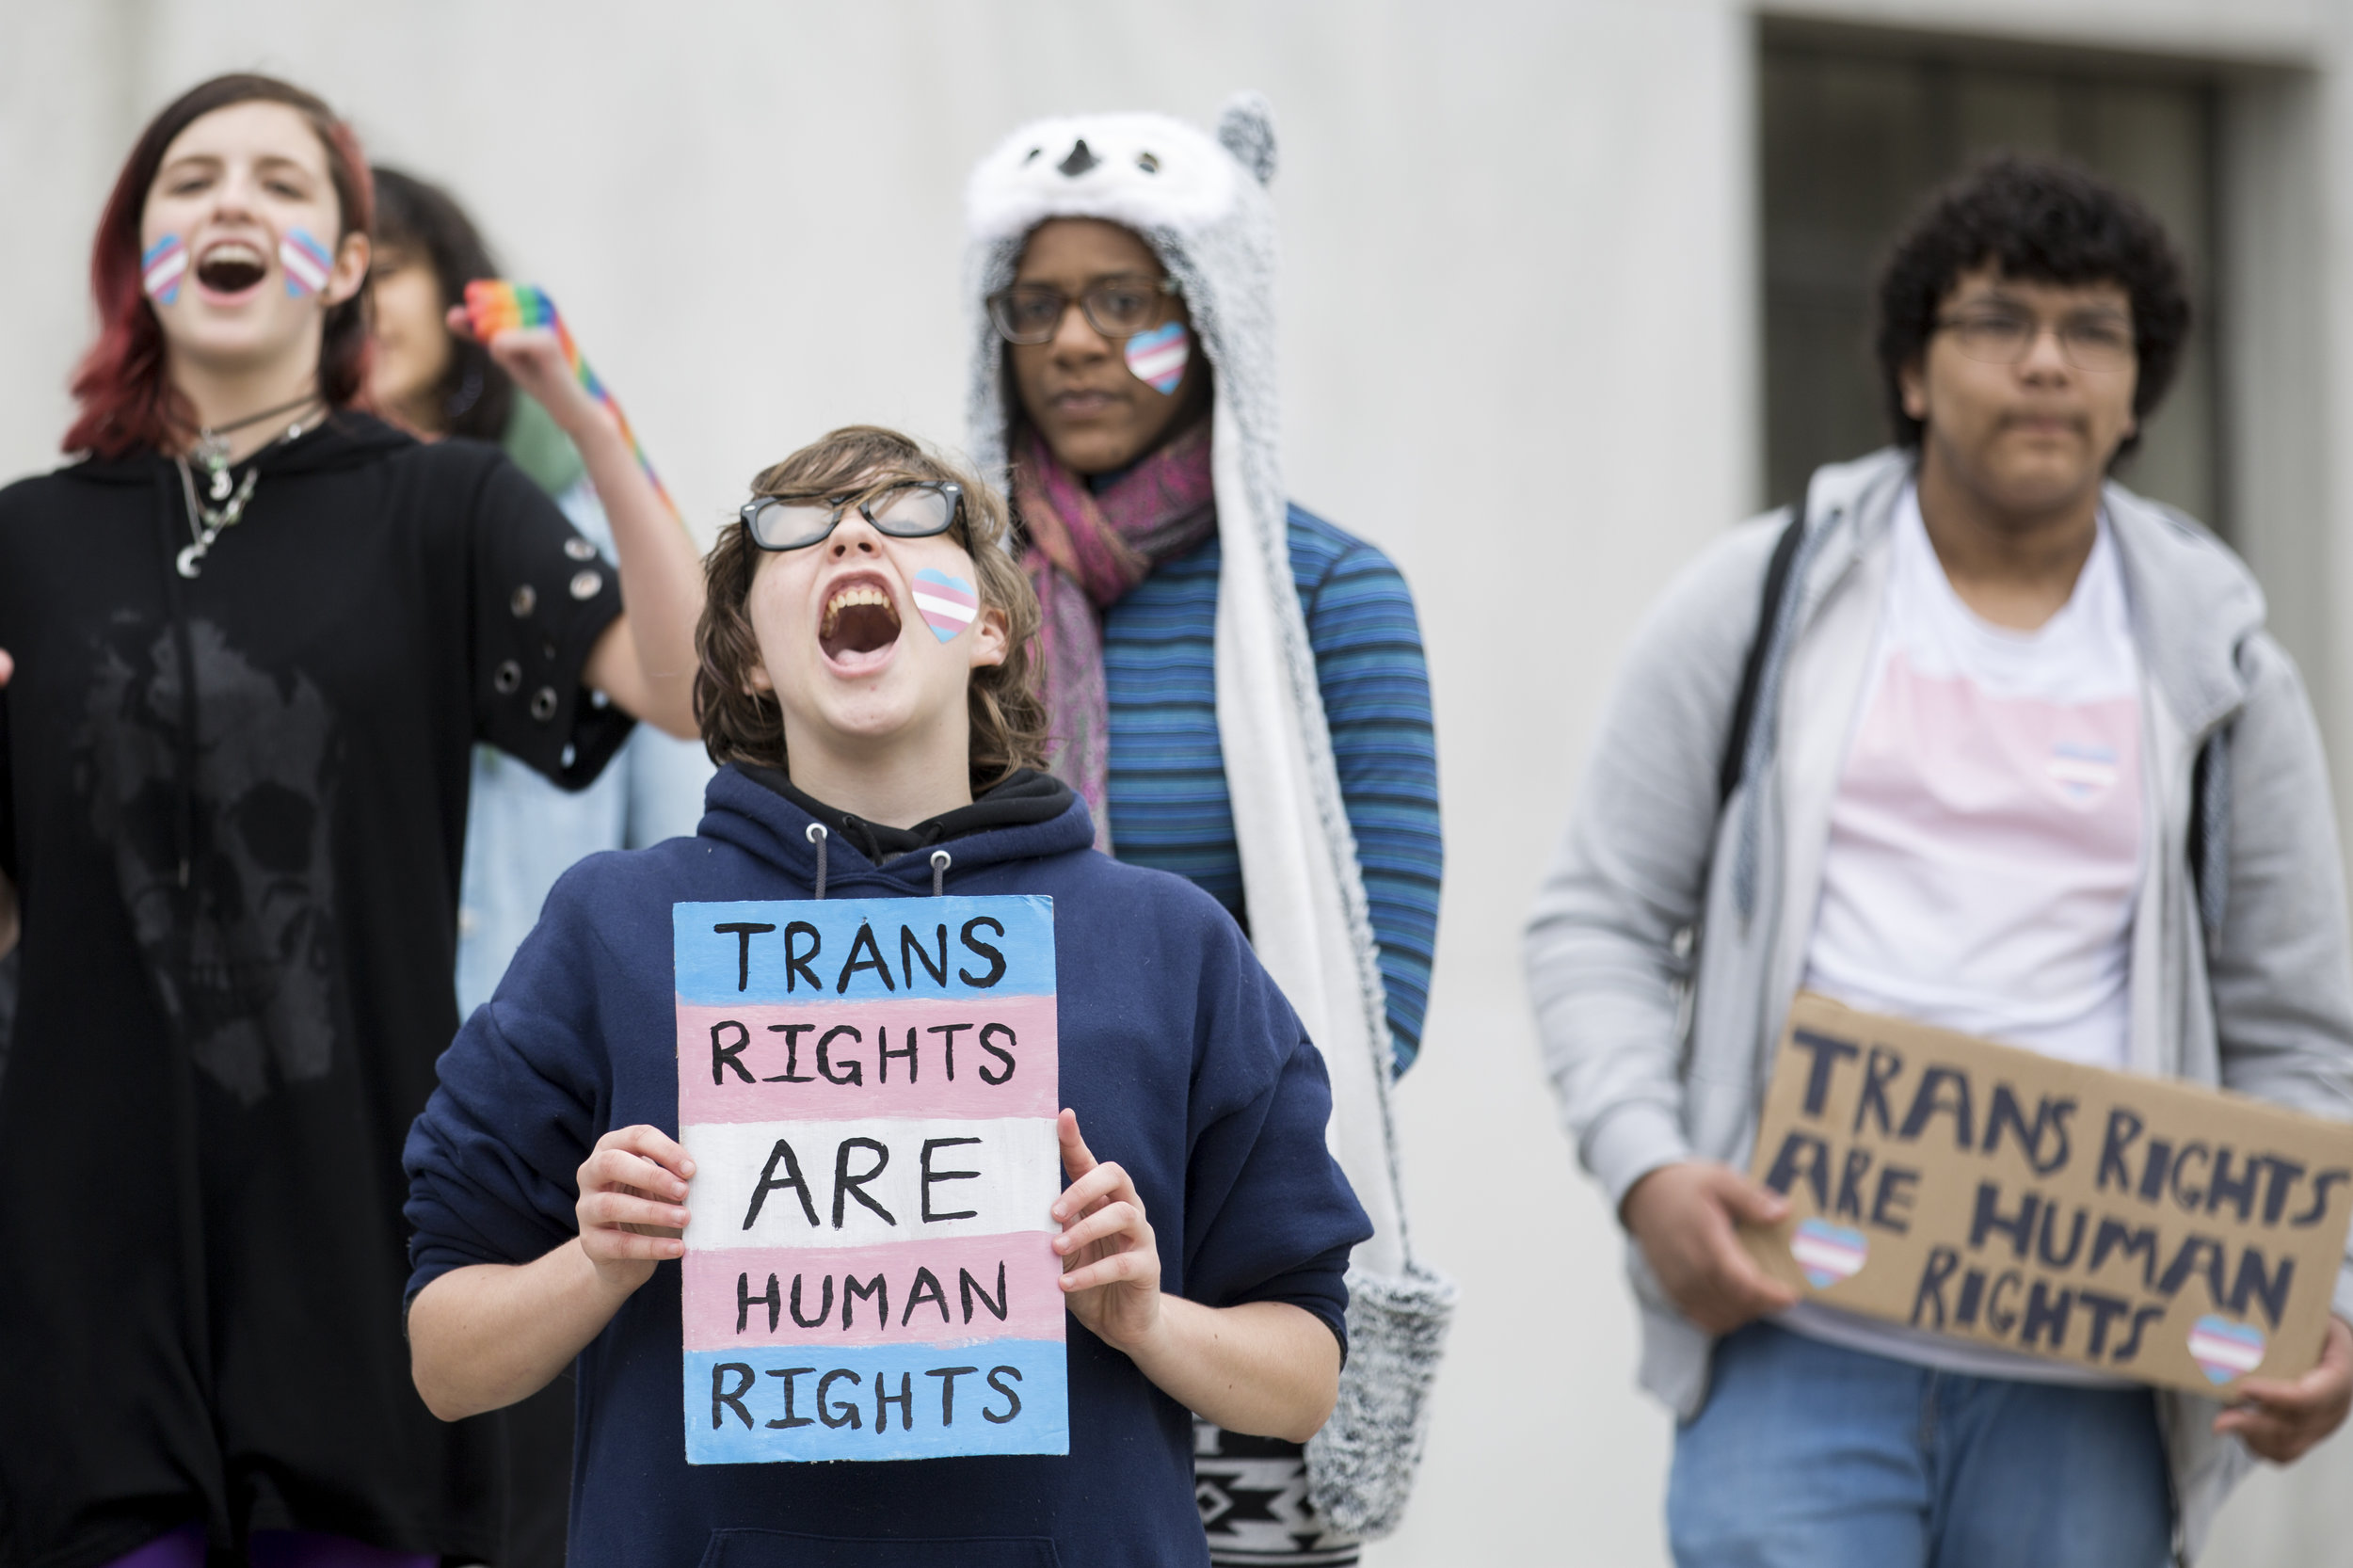 Students from South Salem High School and North Salem High School speak out against recent administration policies regarding transgender rights on the steps of The Oregon State Capitol on Thursday, Nov. 15, 2018.